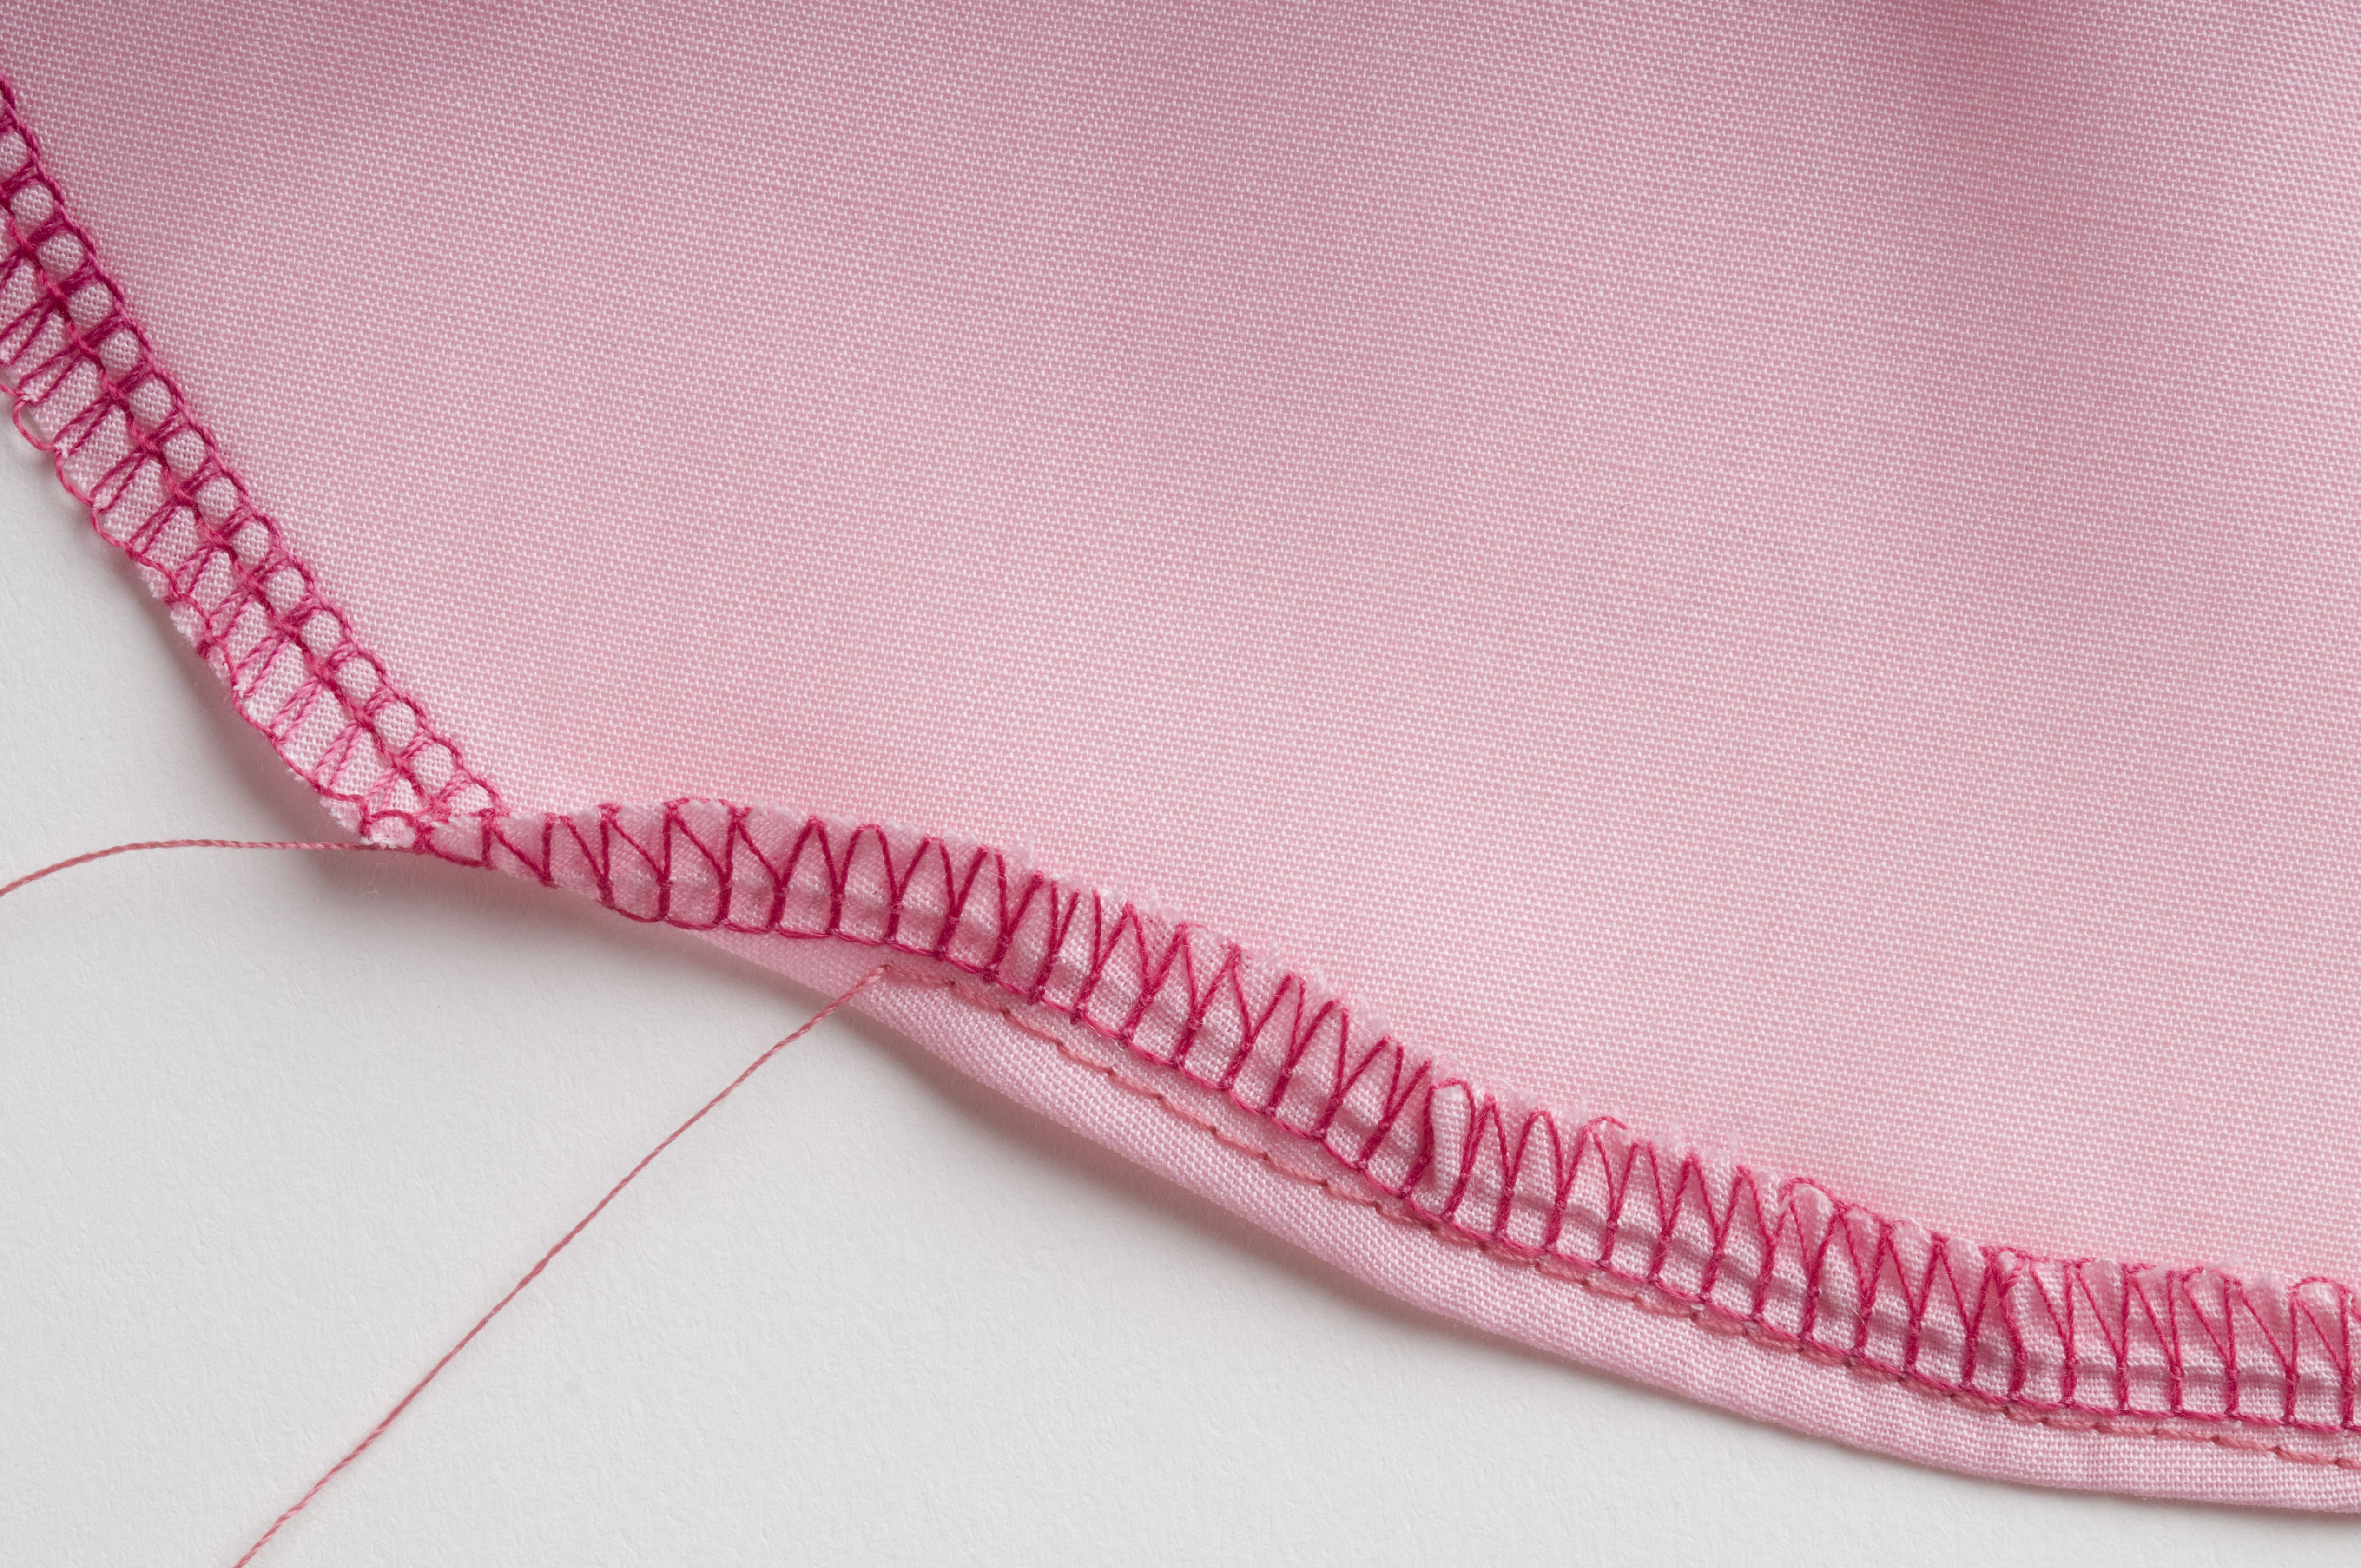 Overlock stitch and straight stitch along curved edge of pink fabric